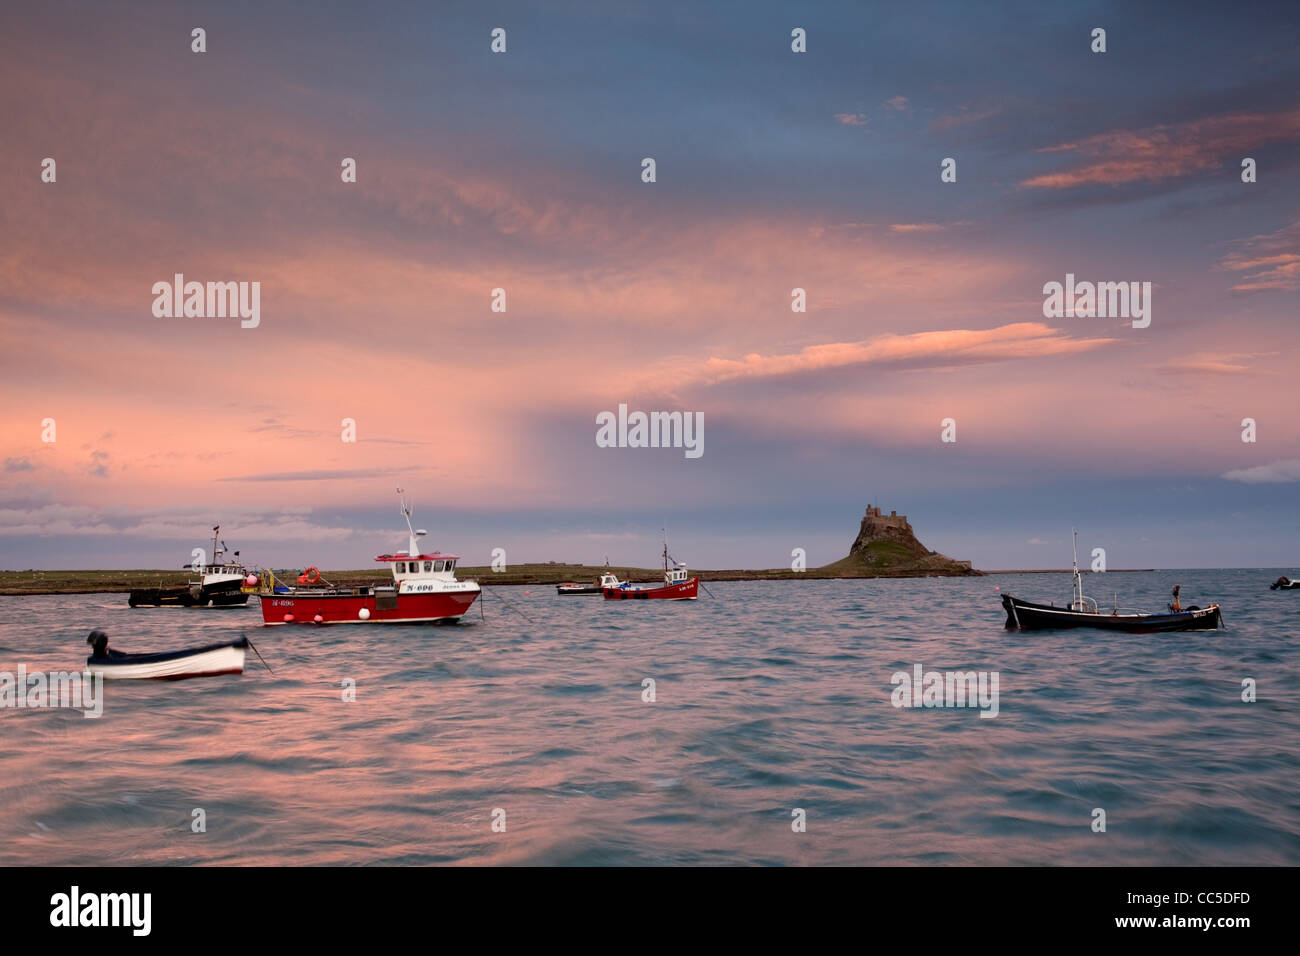 Sunset afterglow over Lindisfarne Castle and harbour. - Stock Image